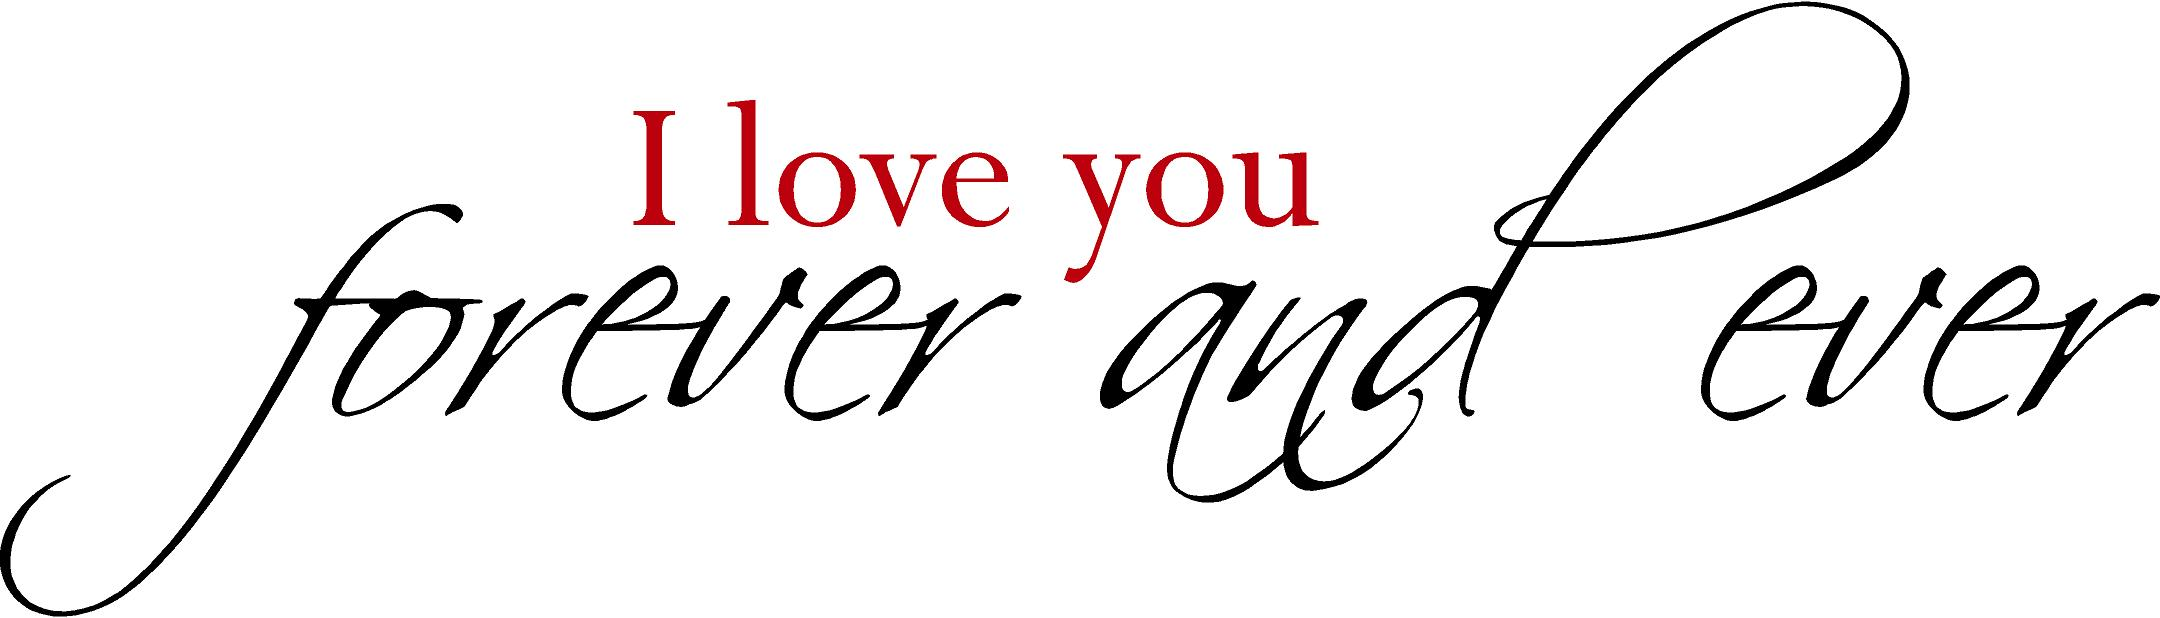 I Love You Forever And Ever Header Image